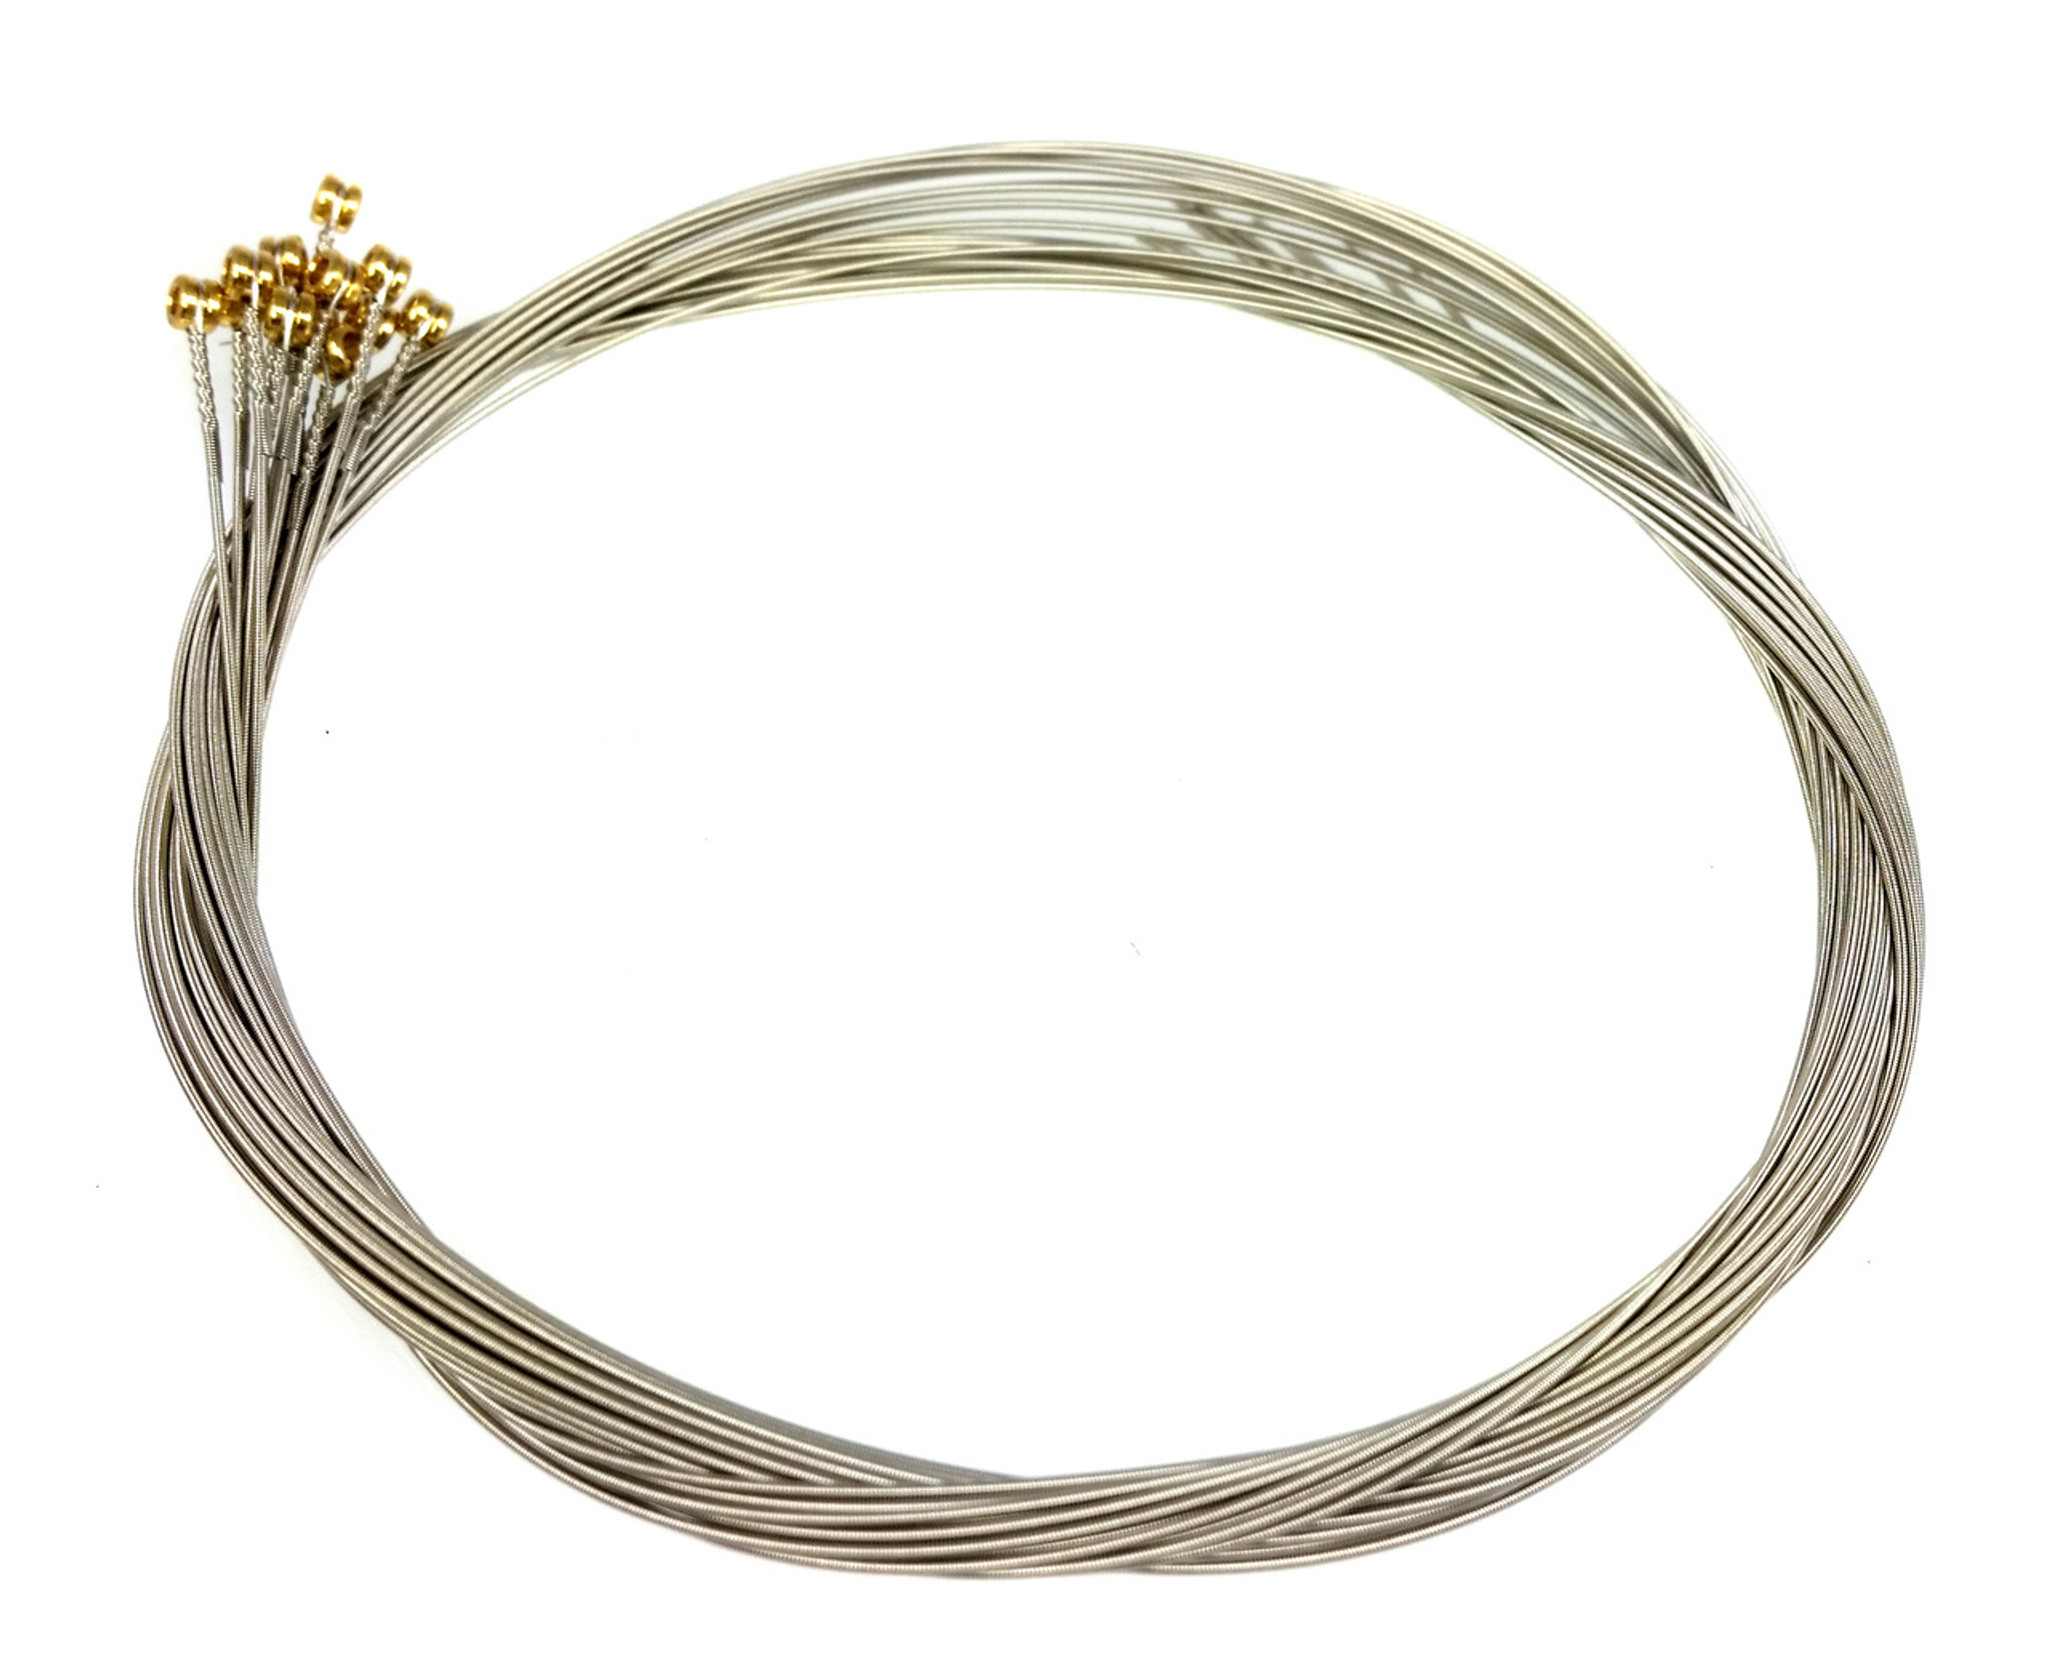 32 gauge 032 nickel wound electric guitar strings 12 pack c b gitty crafter supply. Black Bedroom Furniture Sets. Home Design Ideas